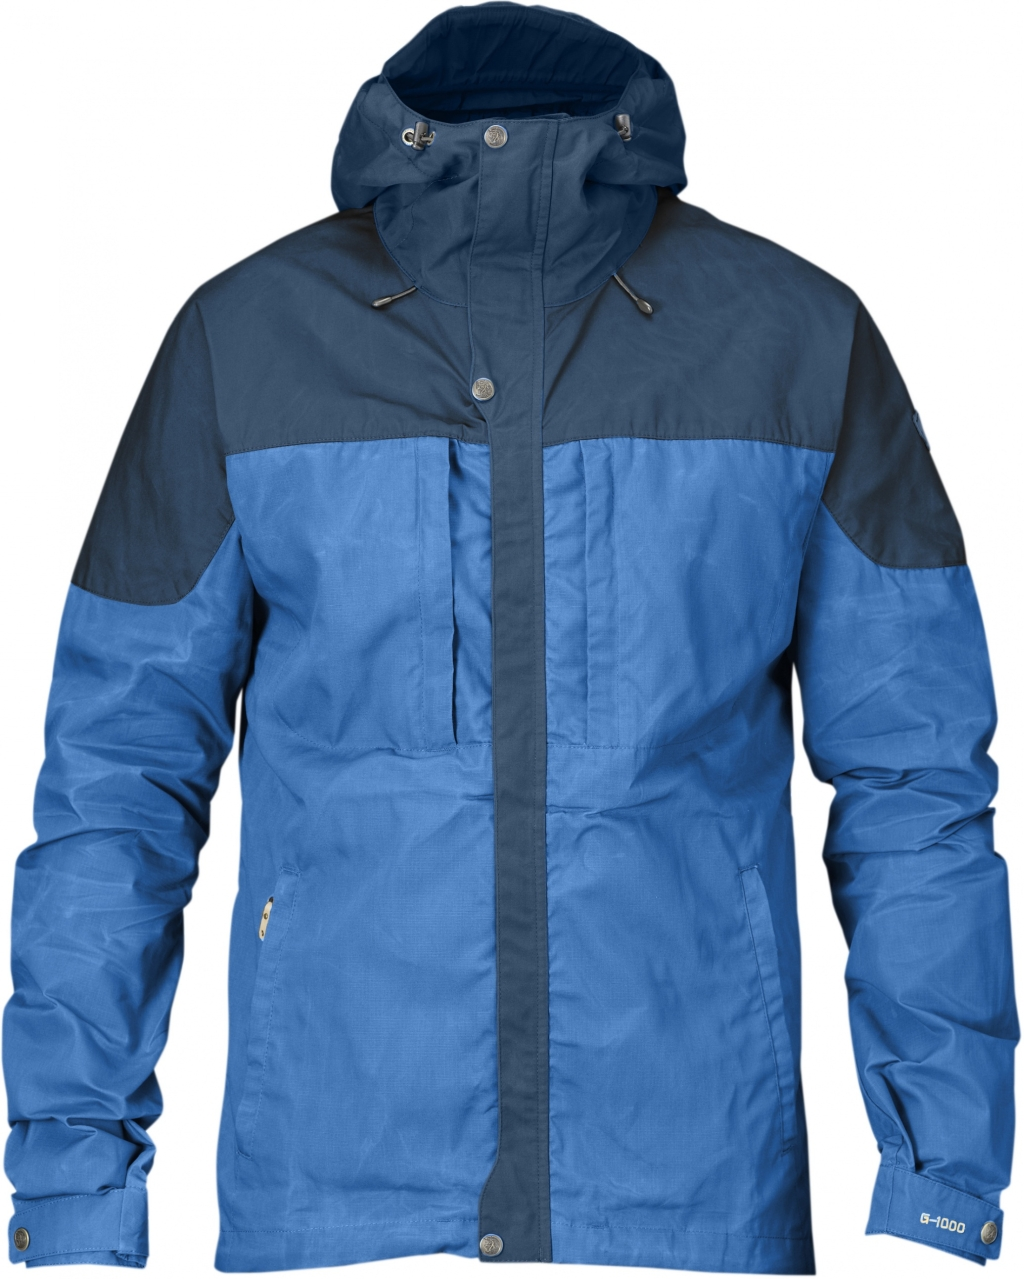 FjallRaven Skogso Jacket UN Blue-30